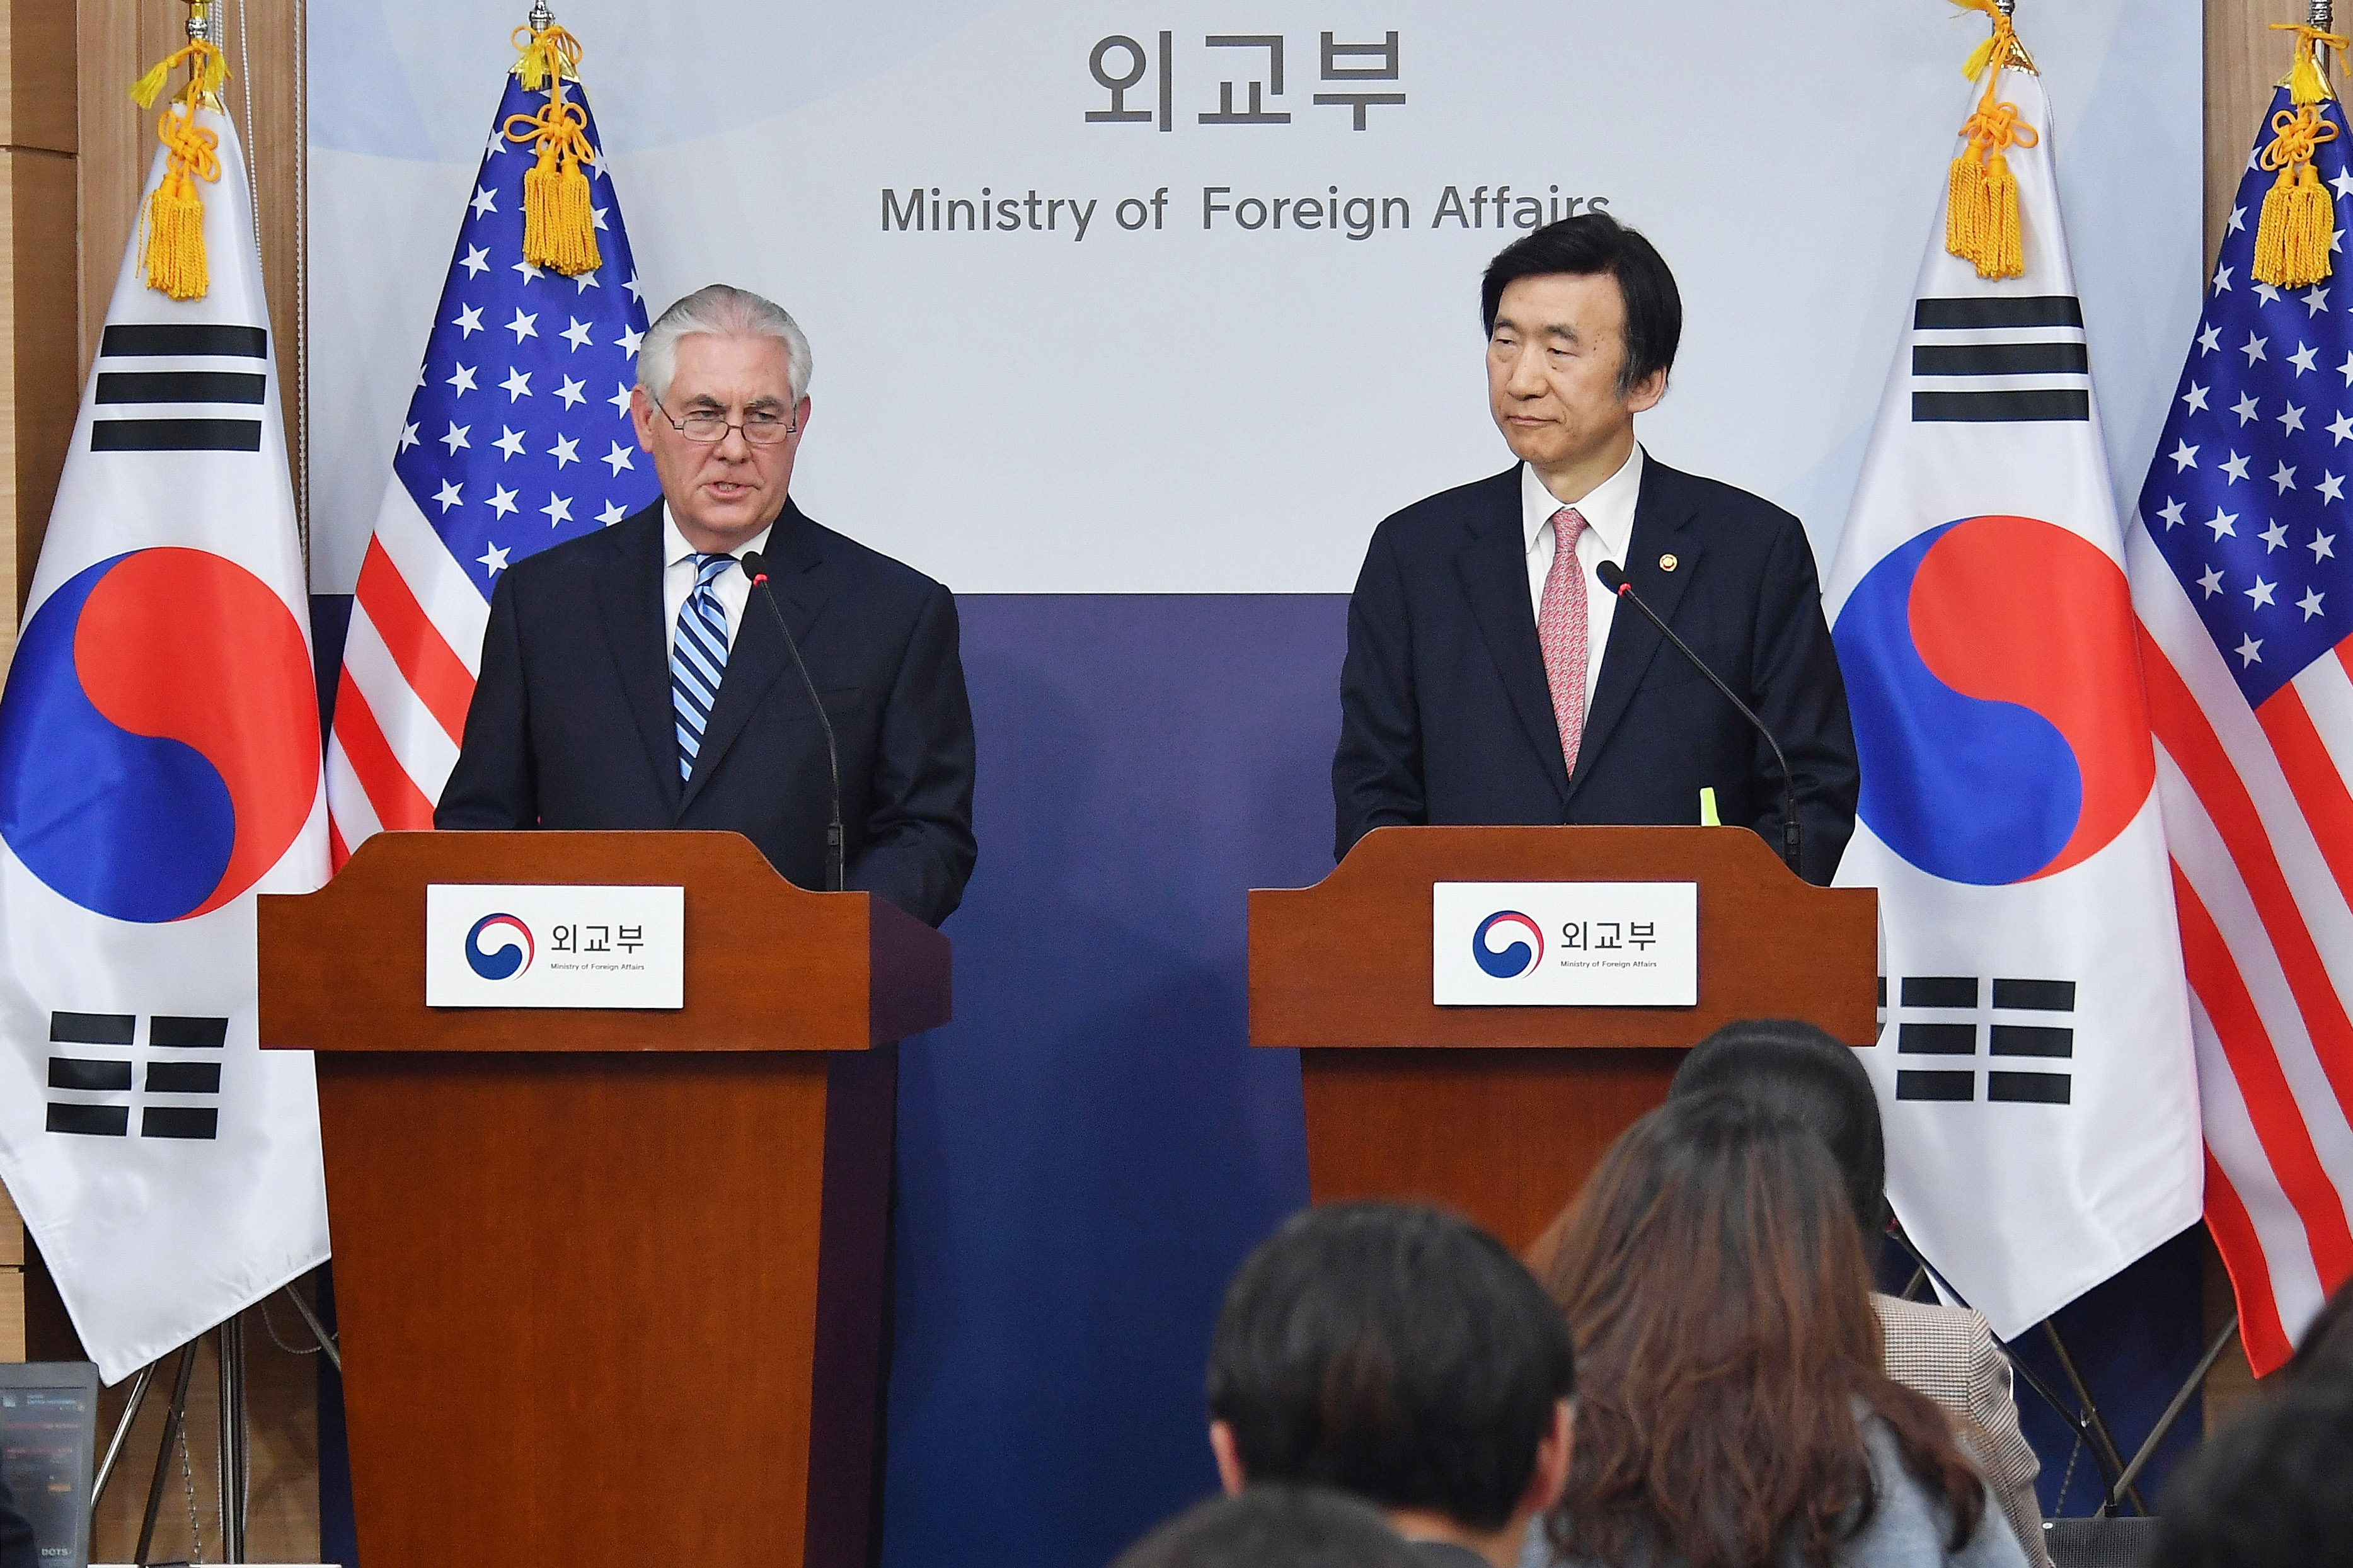 U.S. Secretary of State Rex Tillerson speaks with South Korean Foreign Minister Yun Byung-se in Seoul, South Korea, on March 17, 2017.